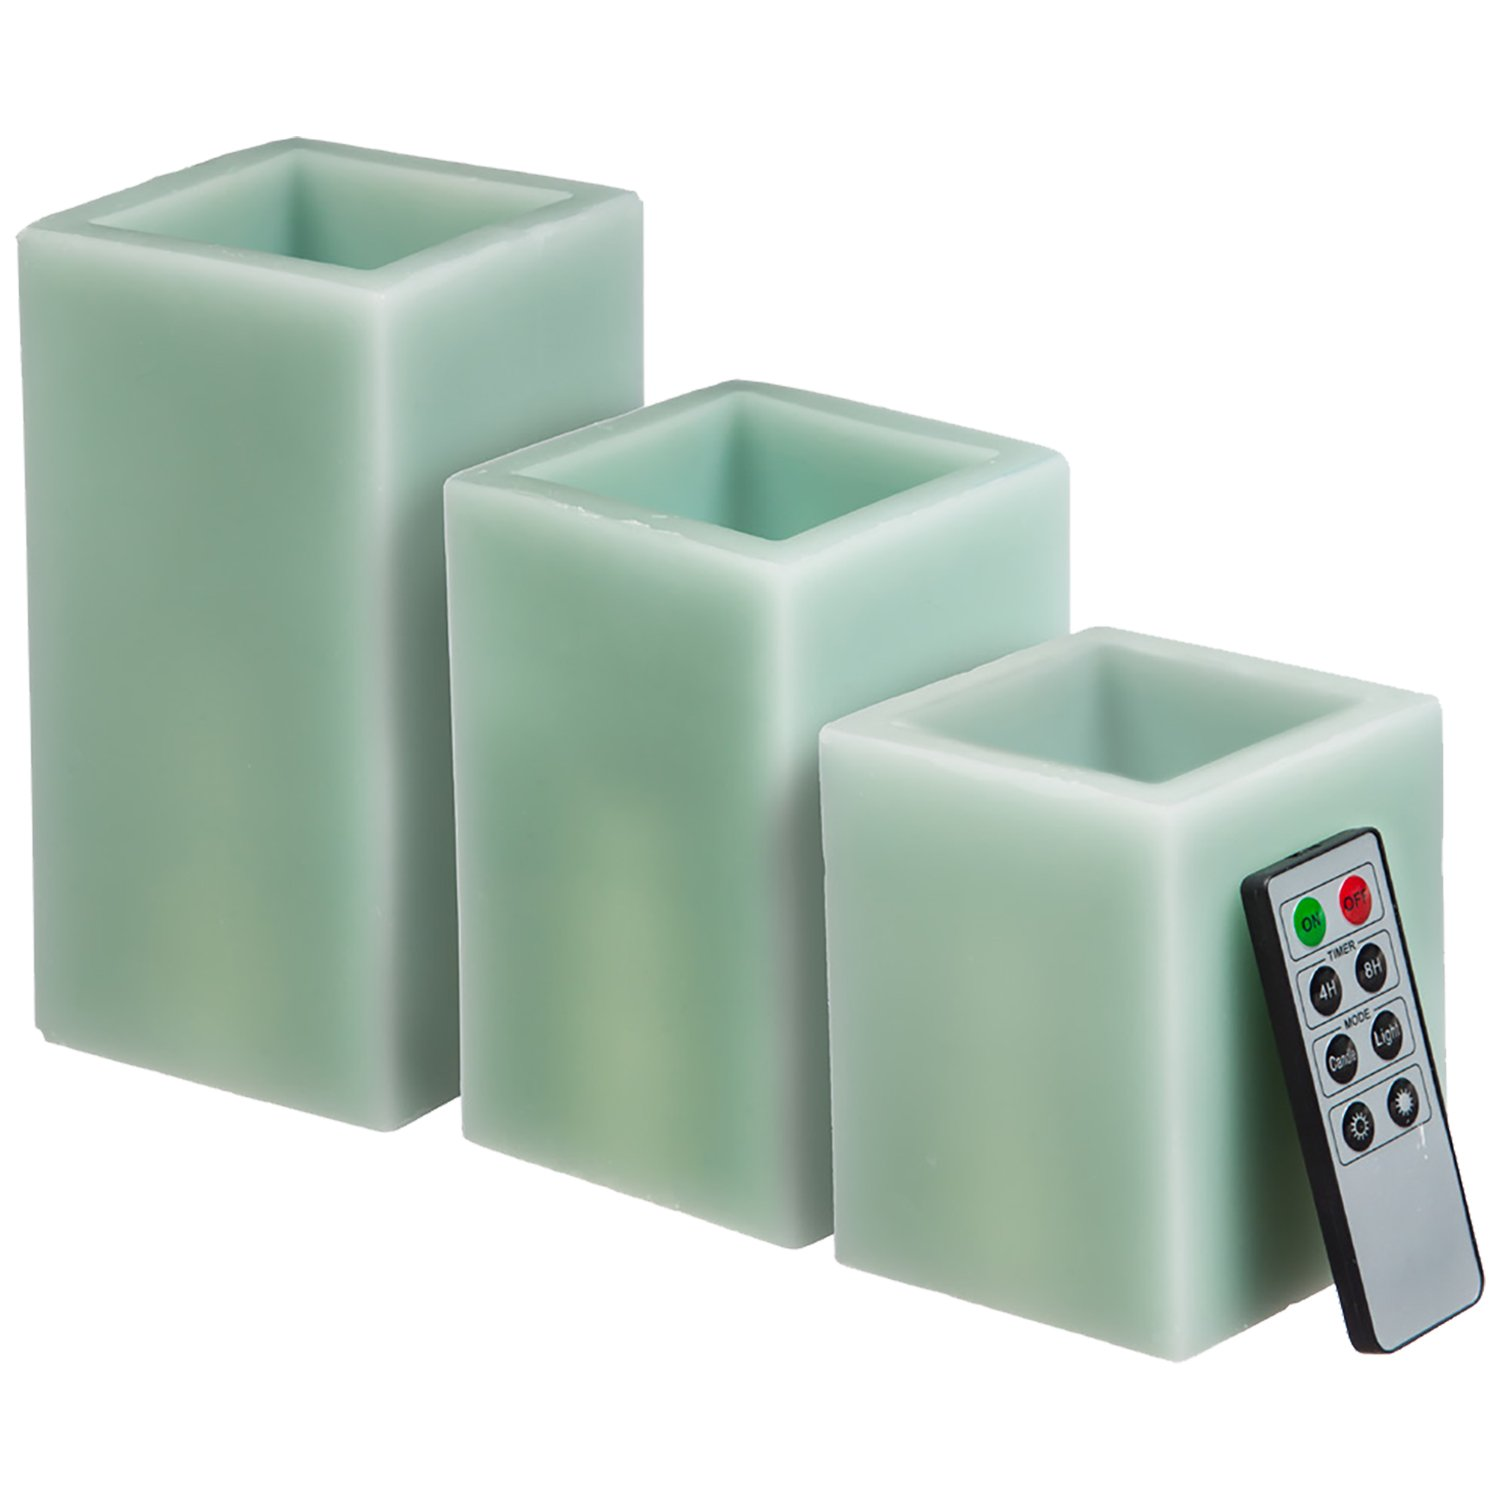 CEDAR HOME Battery Operated Flameless LED Wax Square Pillar Candle Remote, Set of 3, Antique Teal